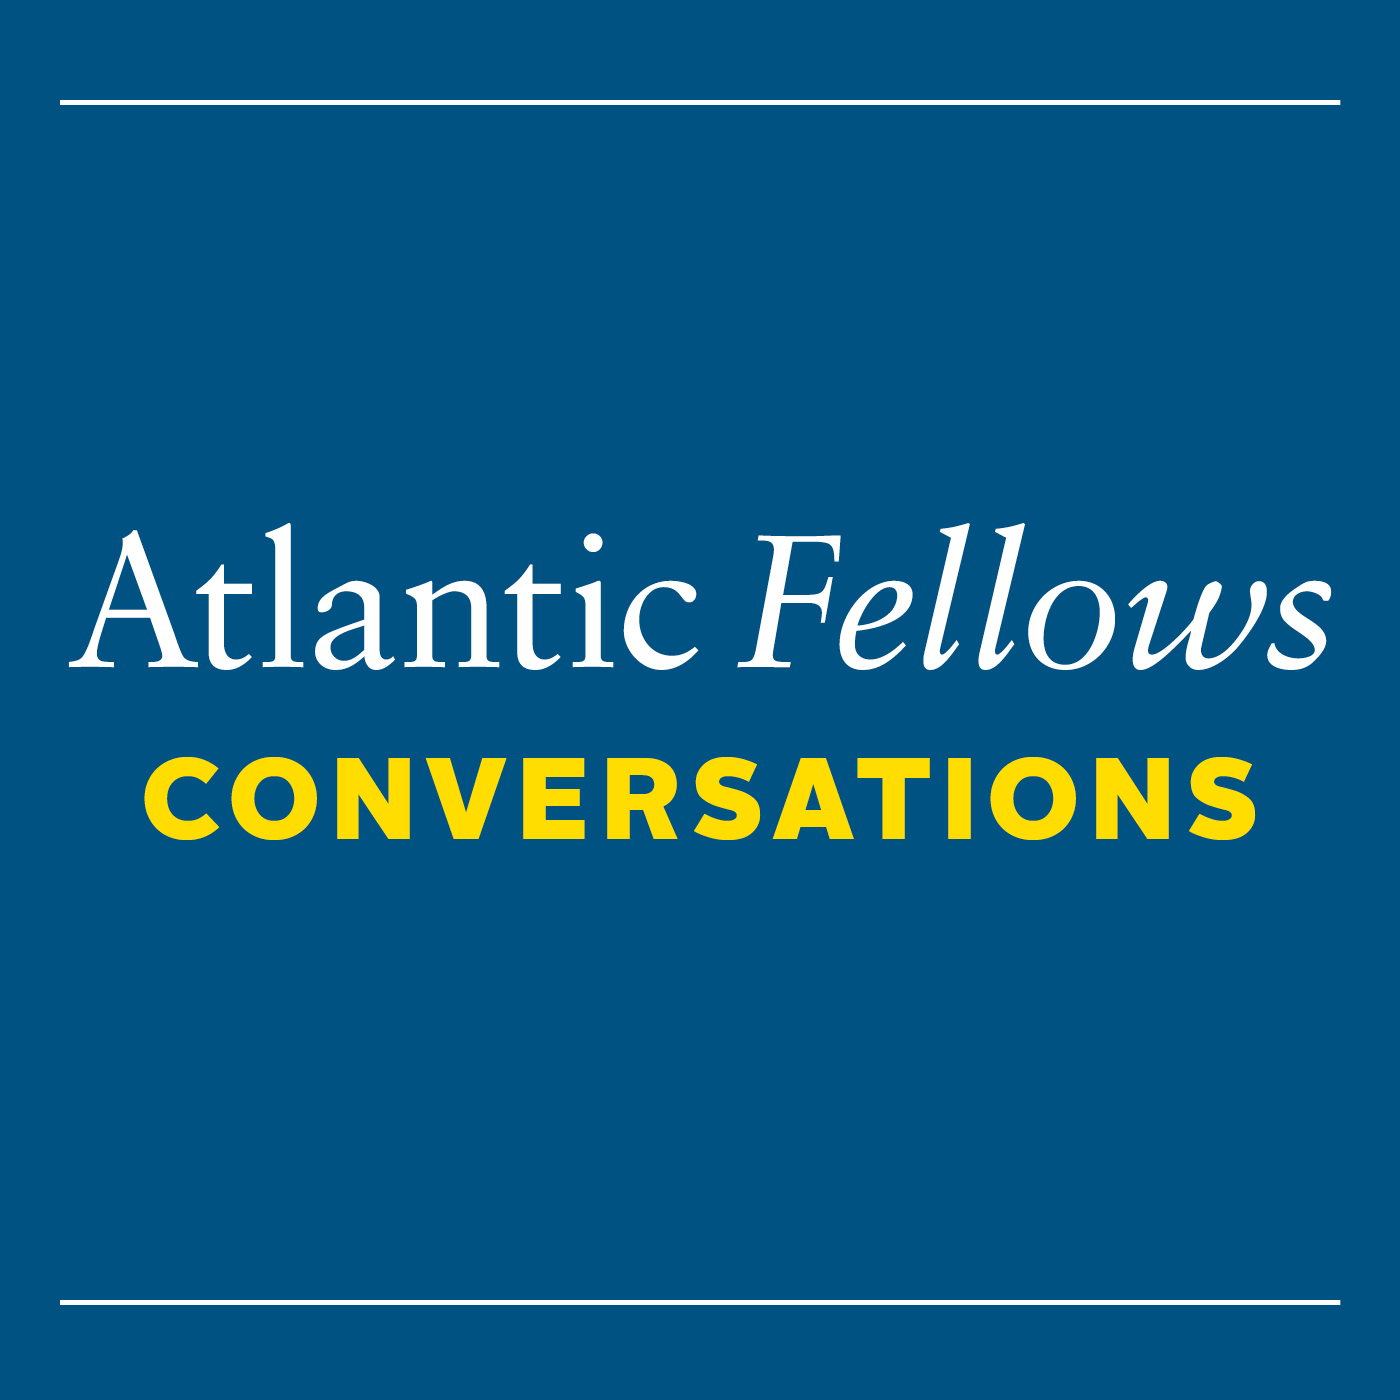 Atlantic Fellows Conversations